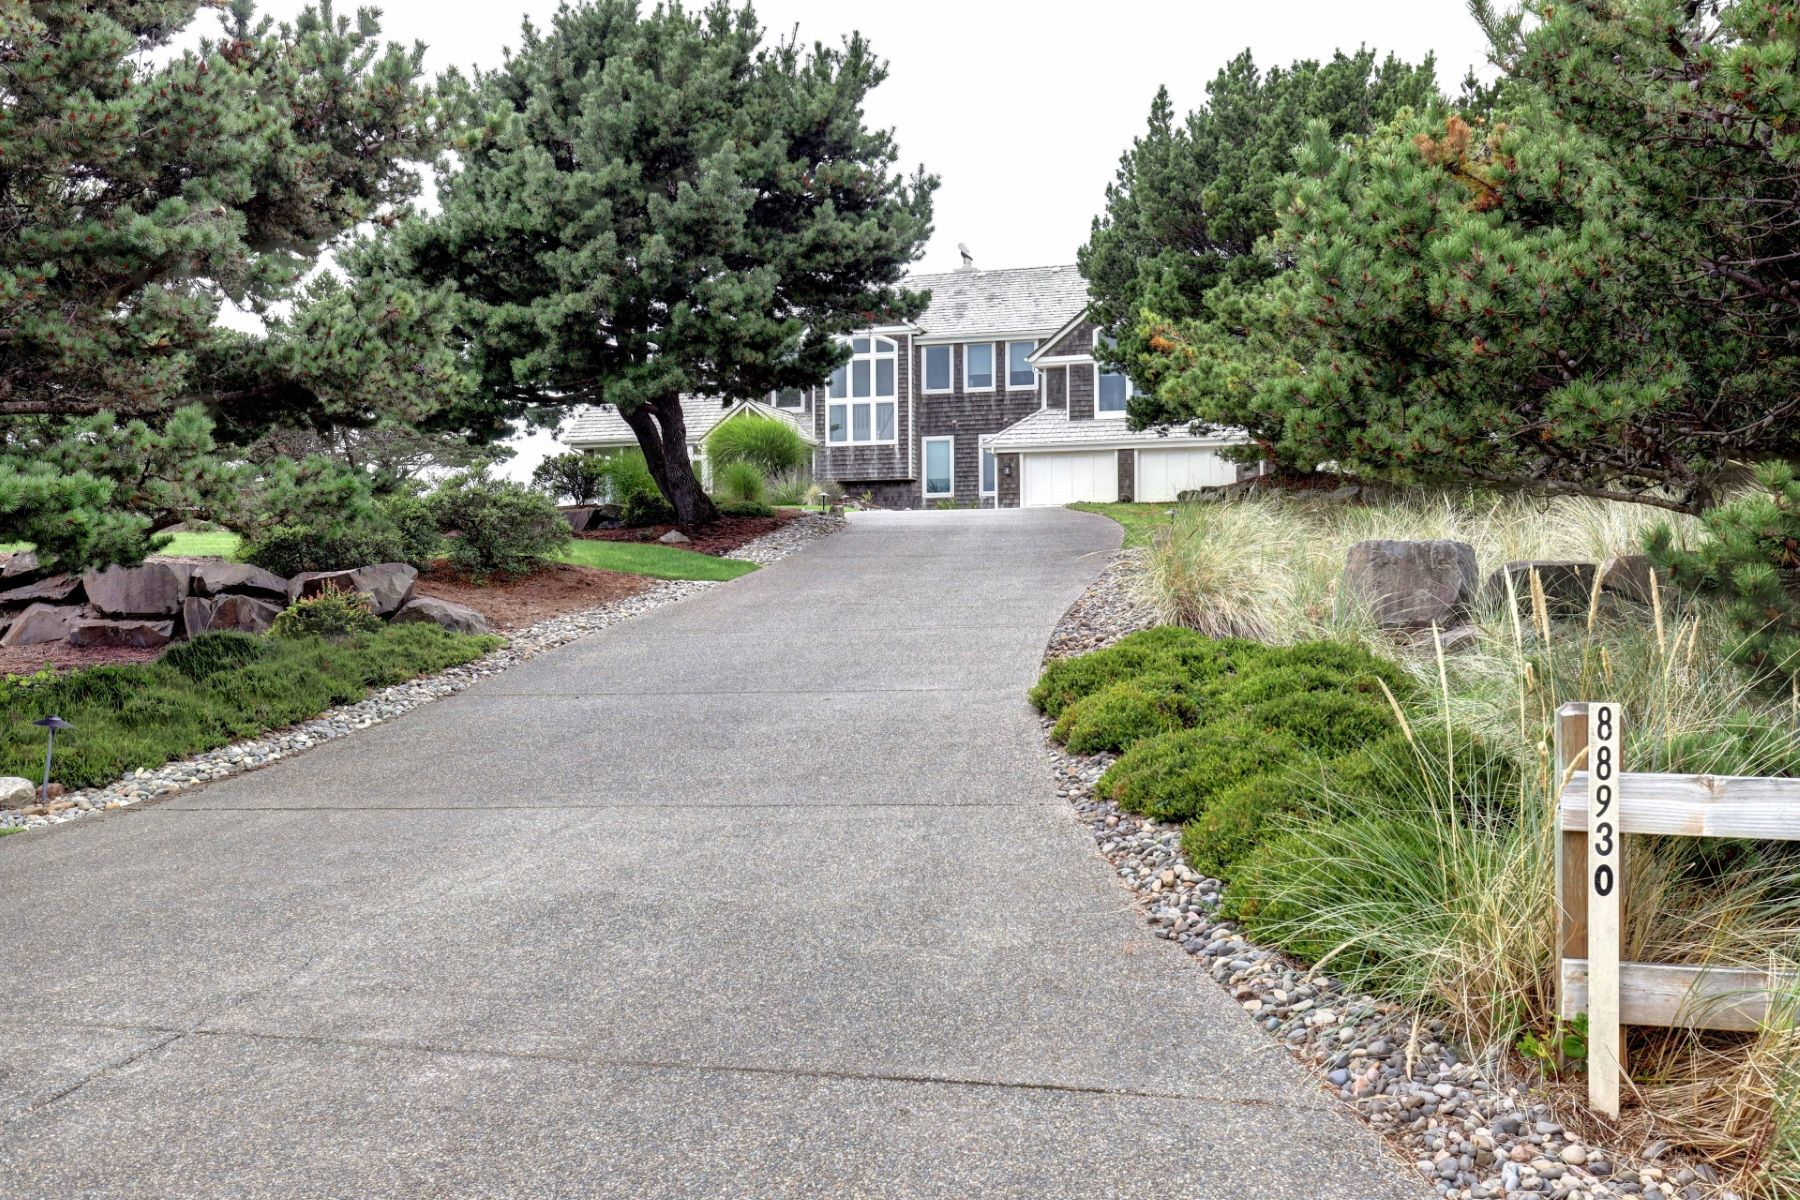 Other Residential Homes for Active at 88930 Pinehurst Rd Gearhart, OR 97138 88930 Pinehurst Rd Gearhart, Oregon 97138 United States